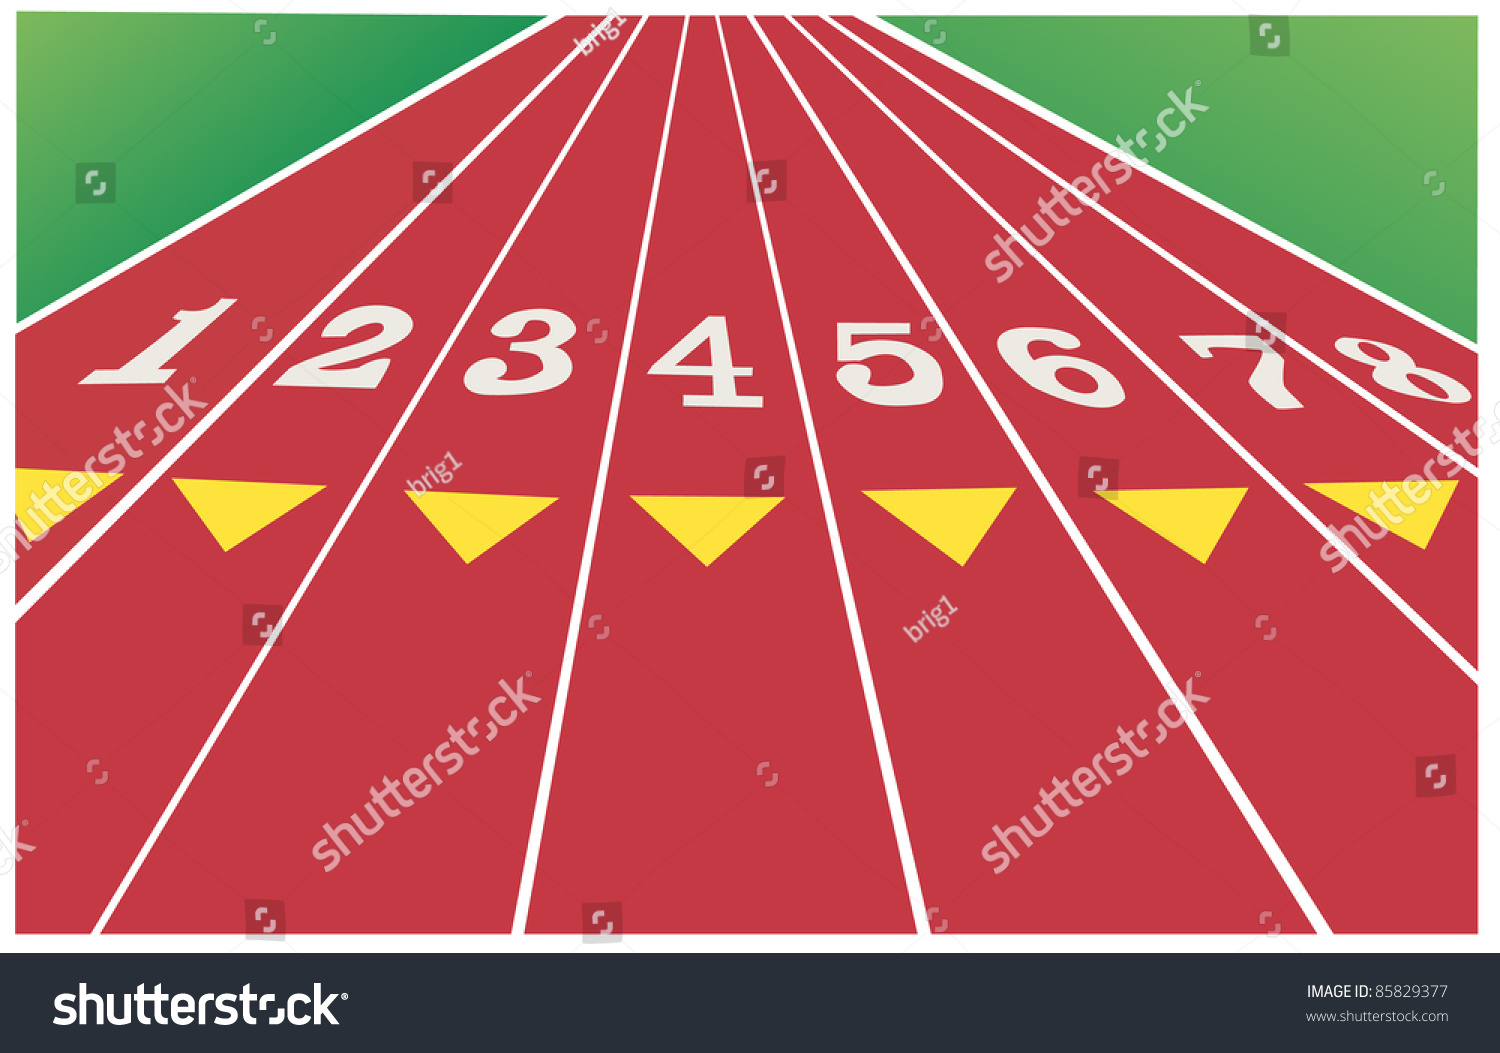 how to draw a running track